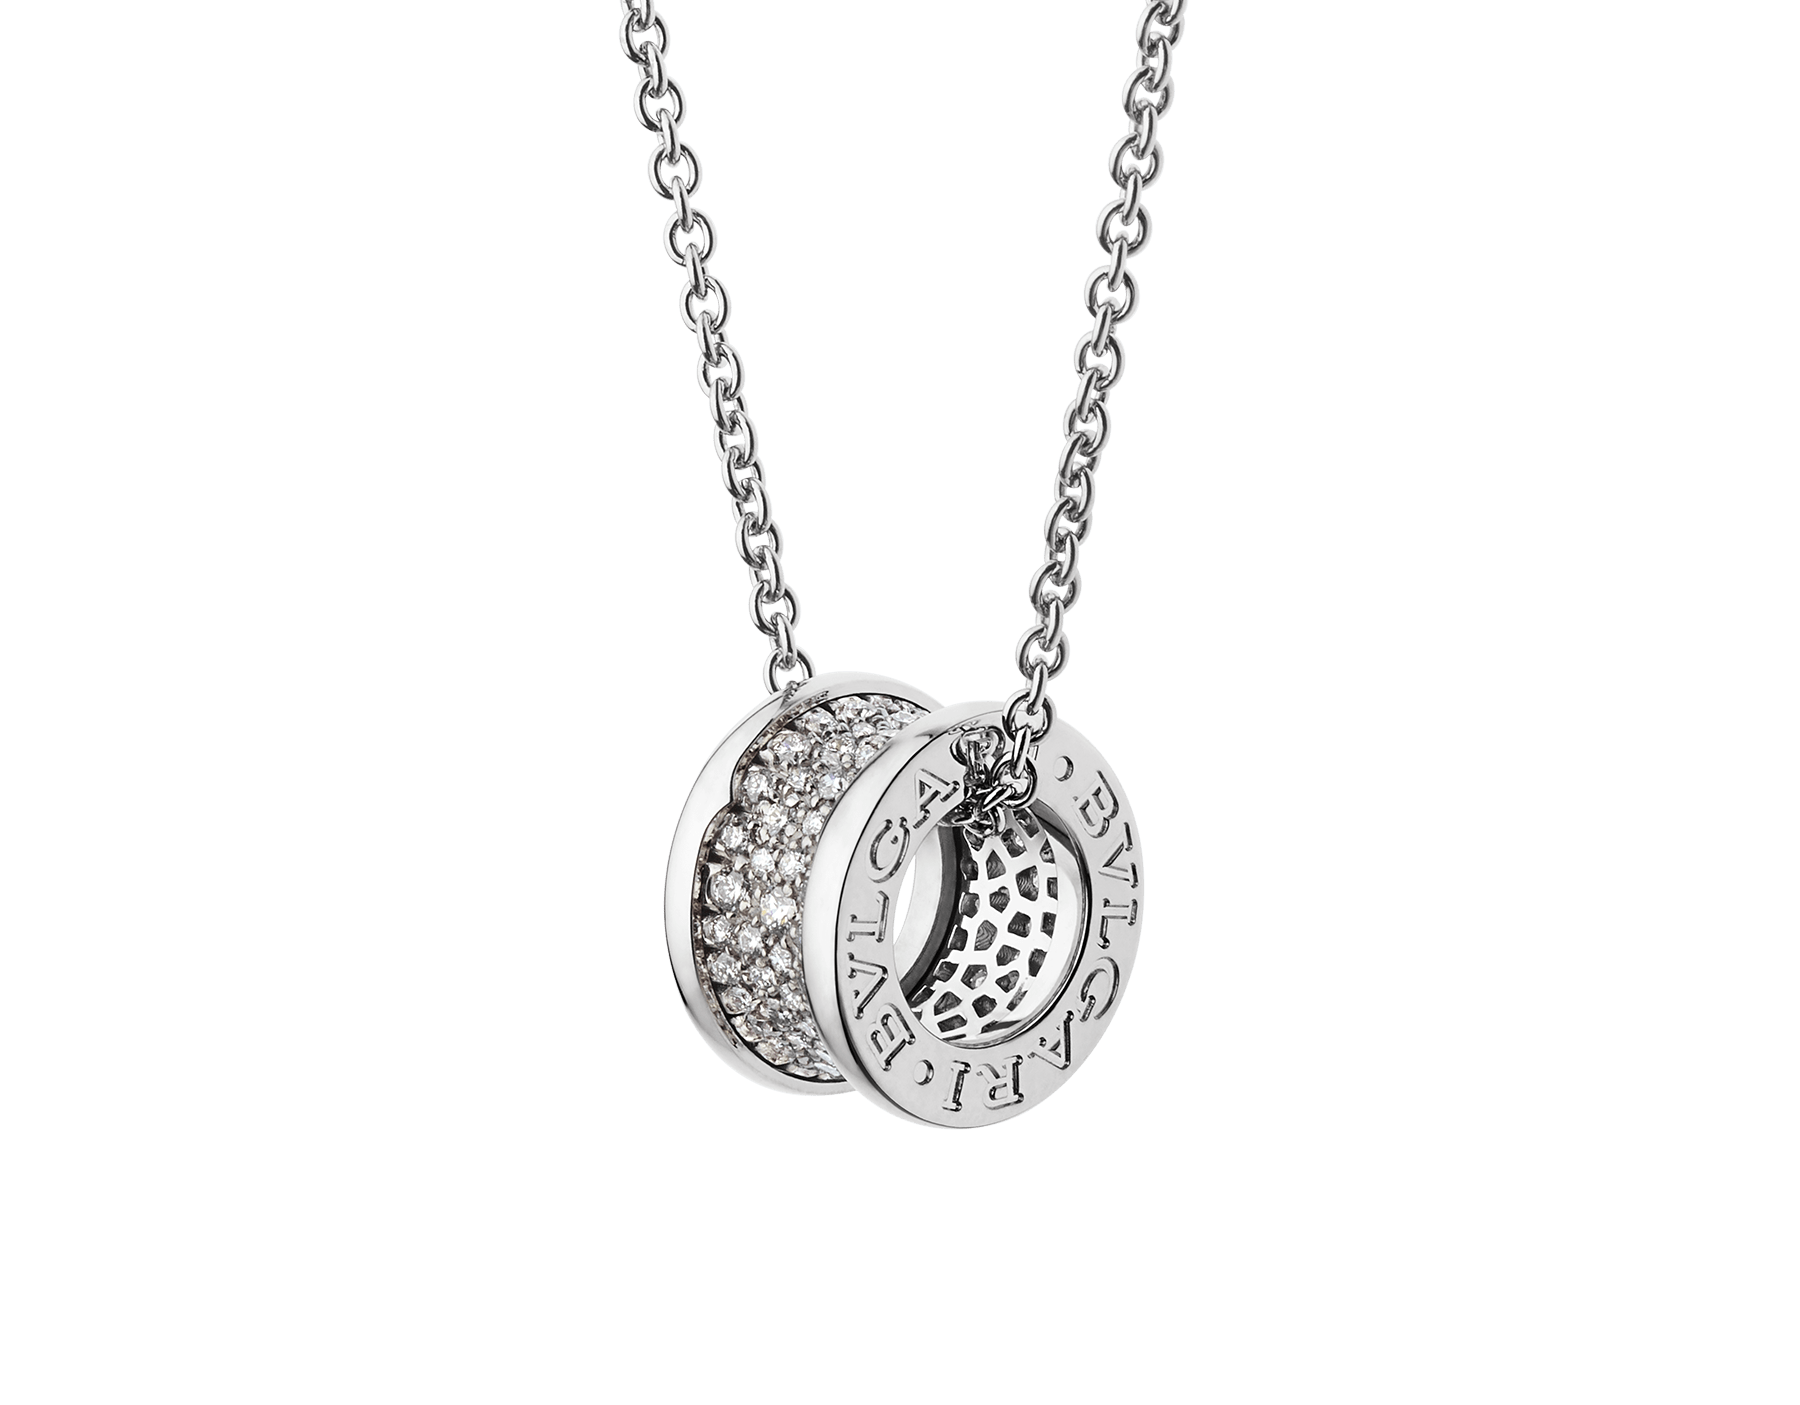 B.zero1 necklace with 18 kt white gold chain and pendant in 18 kt white gold set with pavé diamonds on the spiral. 346167 image 1